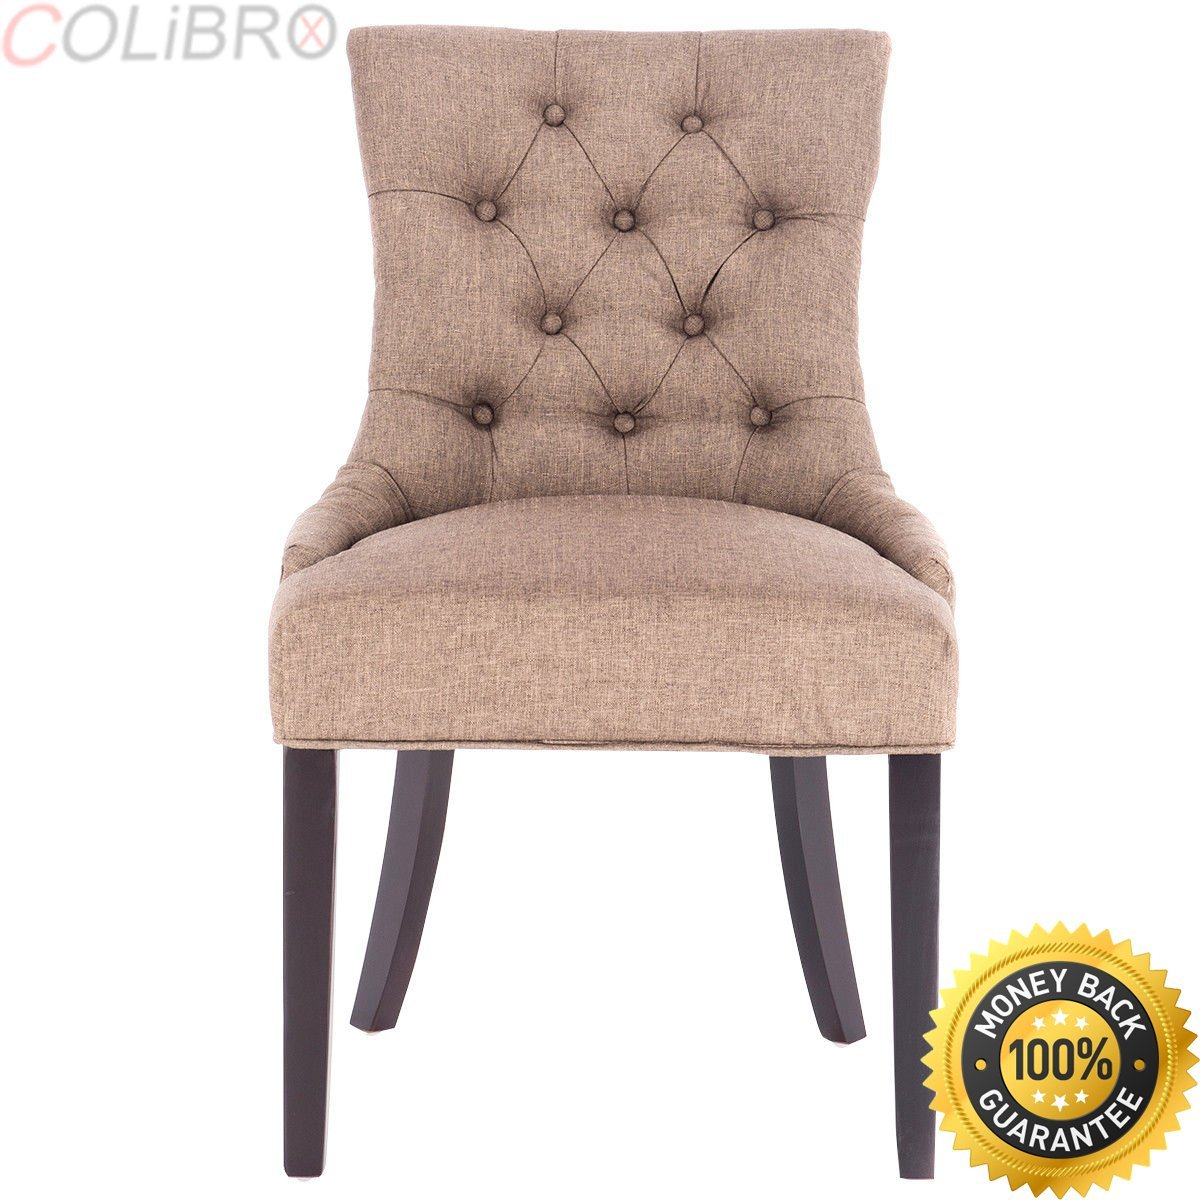 COLIBROX--Fabric Dining Chair Tufted Leisure Padded Upholestered Nailed Trim w/ Wood Legs. dining chair leisure padded chair with armrest, nailed trim. side dining chair upholstered dining chair.